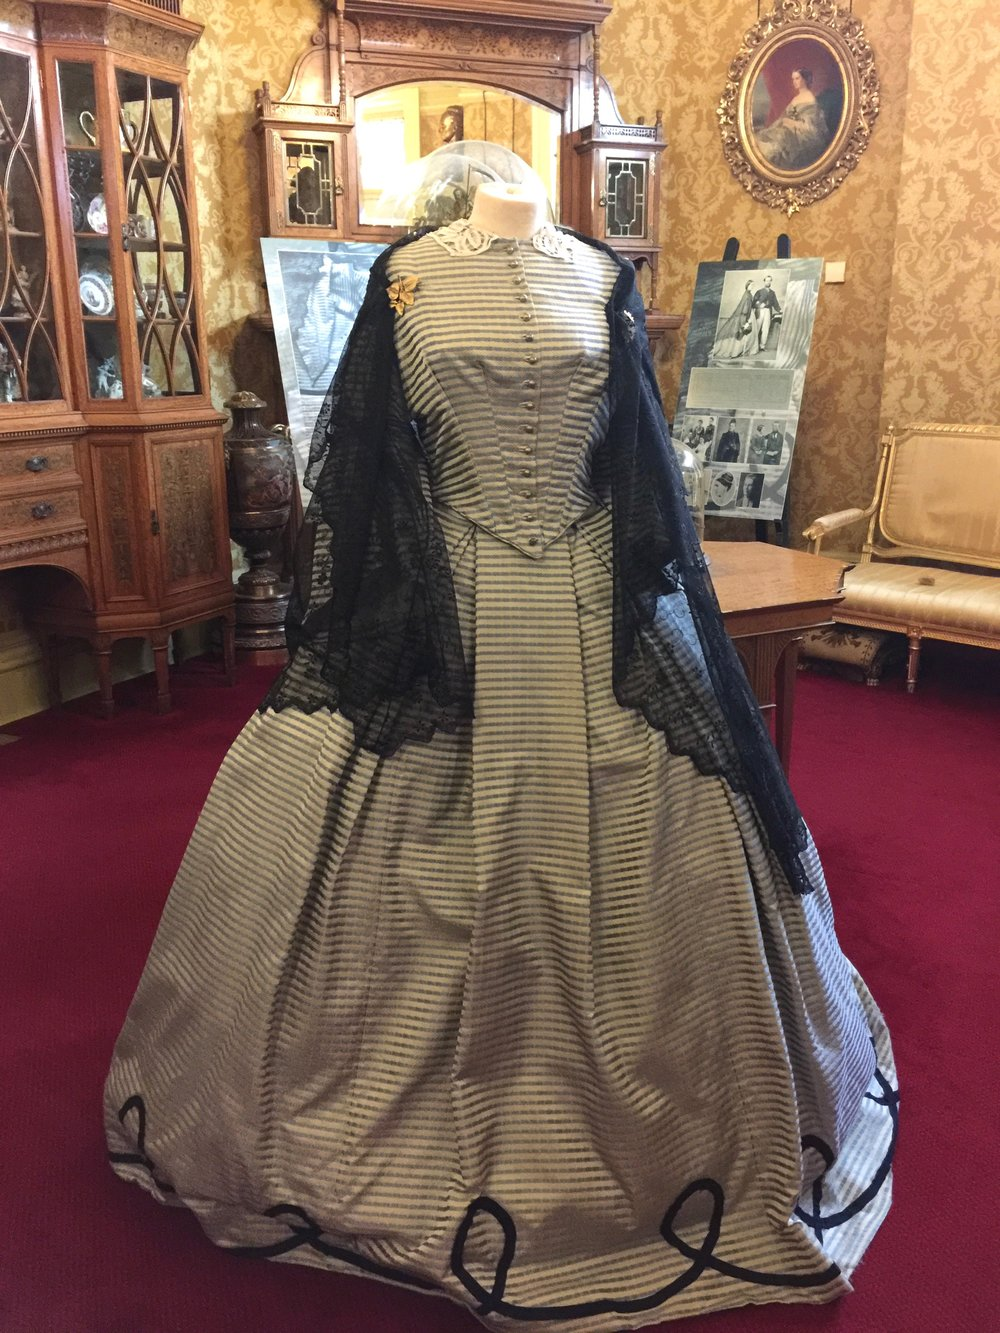 Costumes at the Russell Cotes Museum.